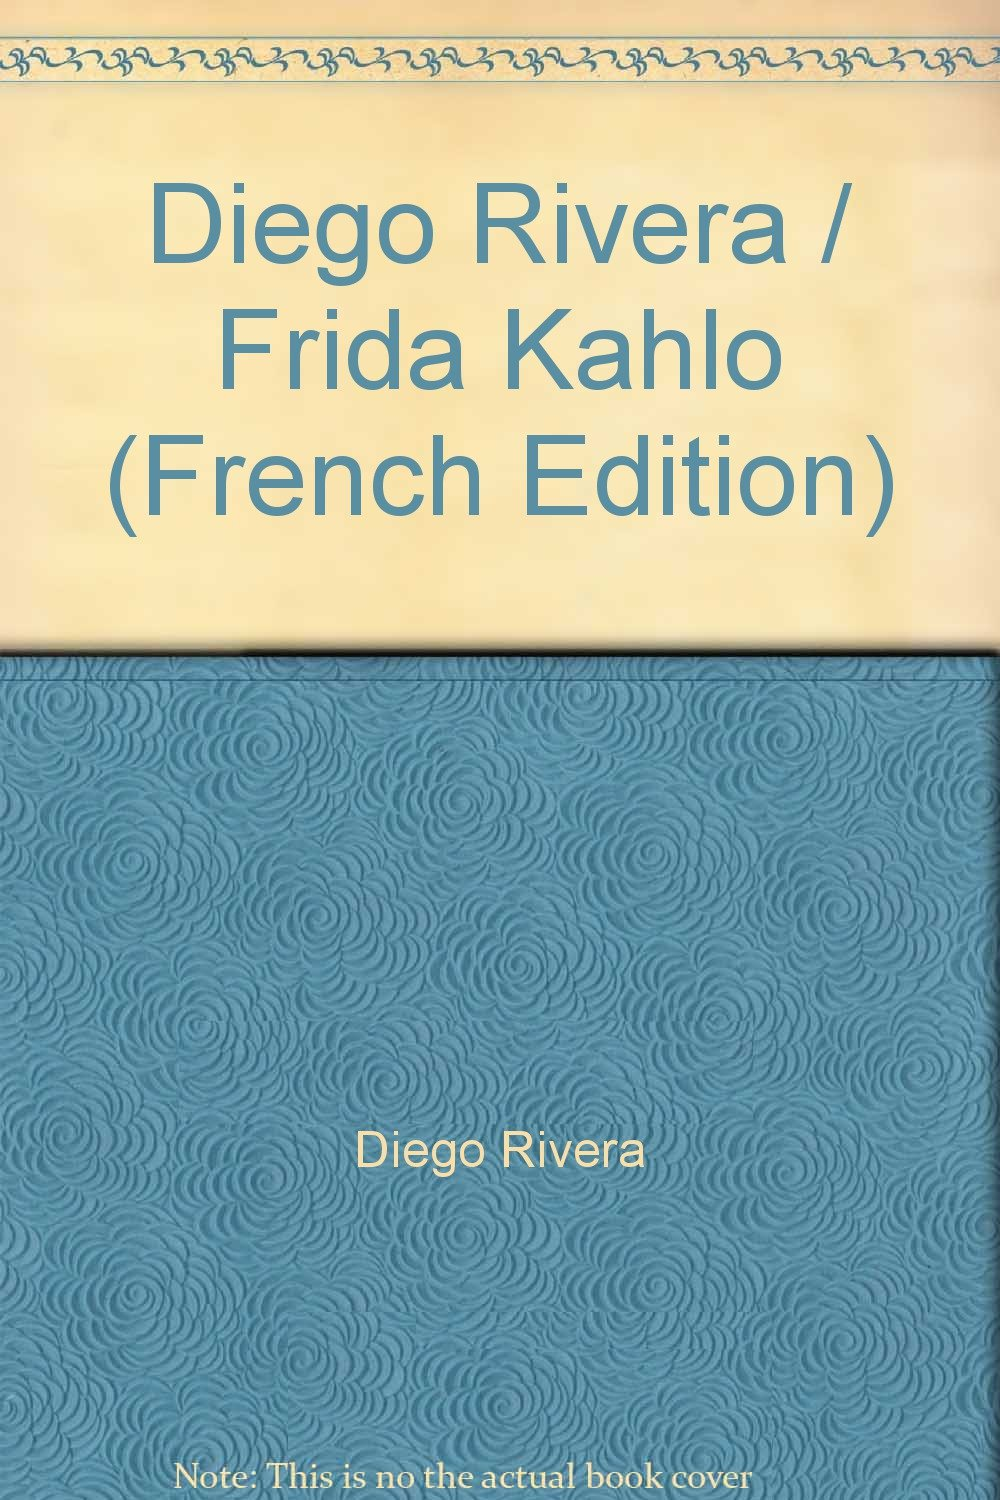 diego rivera frida kahlo french edition